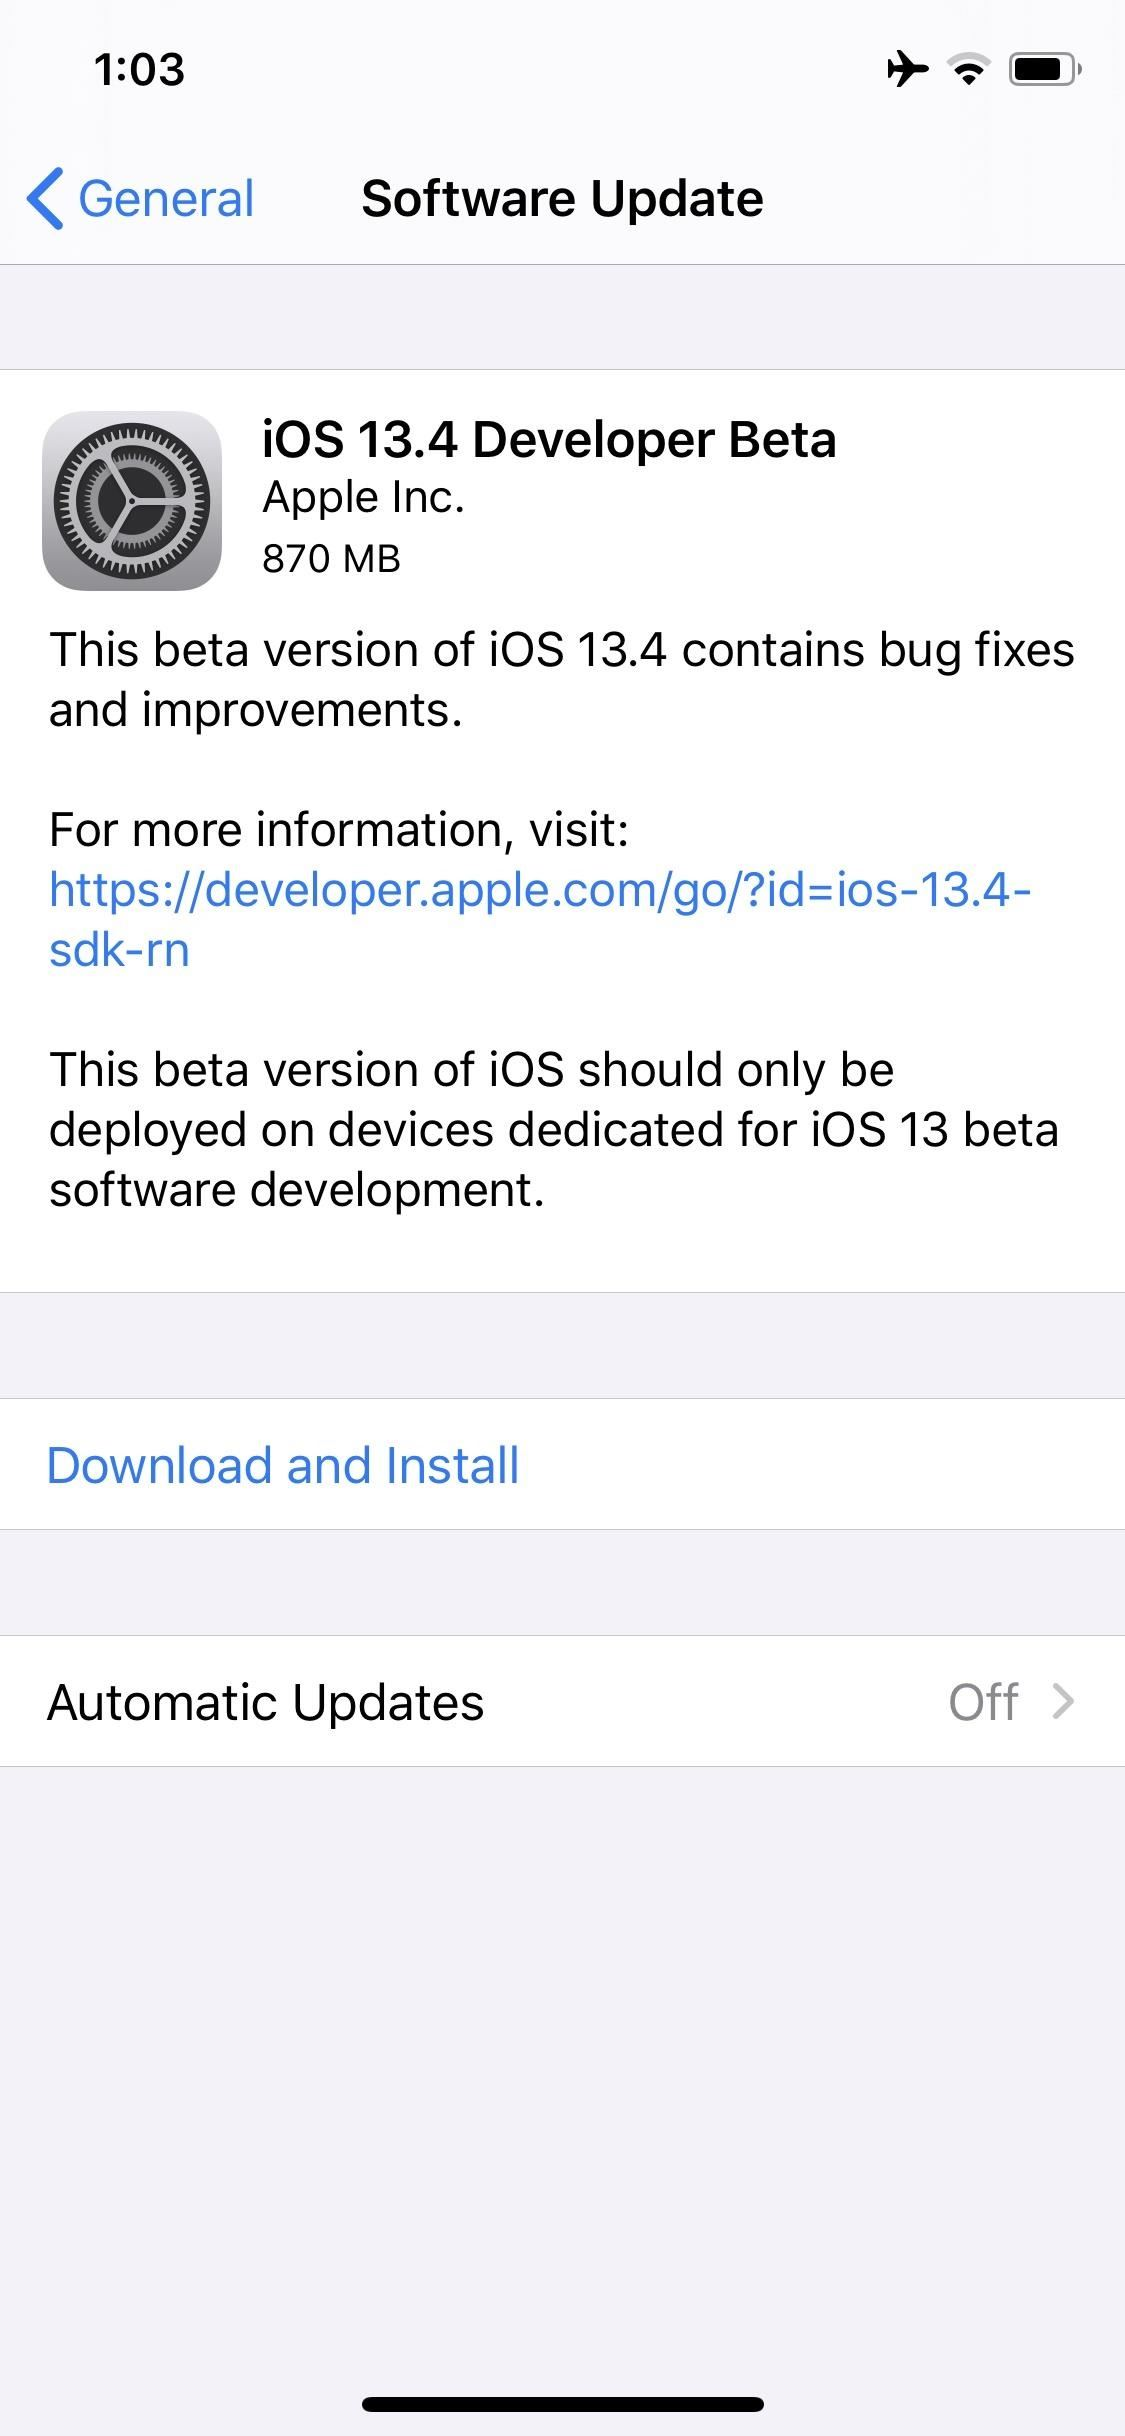 Apple has just released iOS 13.4 Developer Beta 1 for iPhone, including nine new Memoji stickers